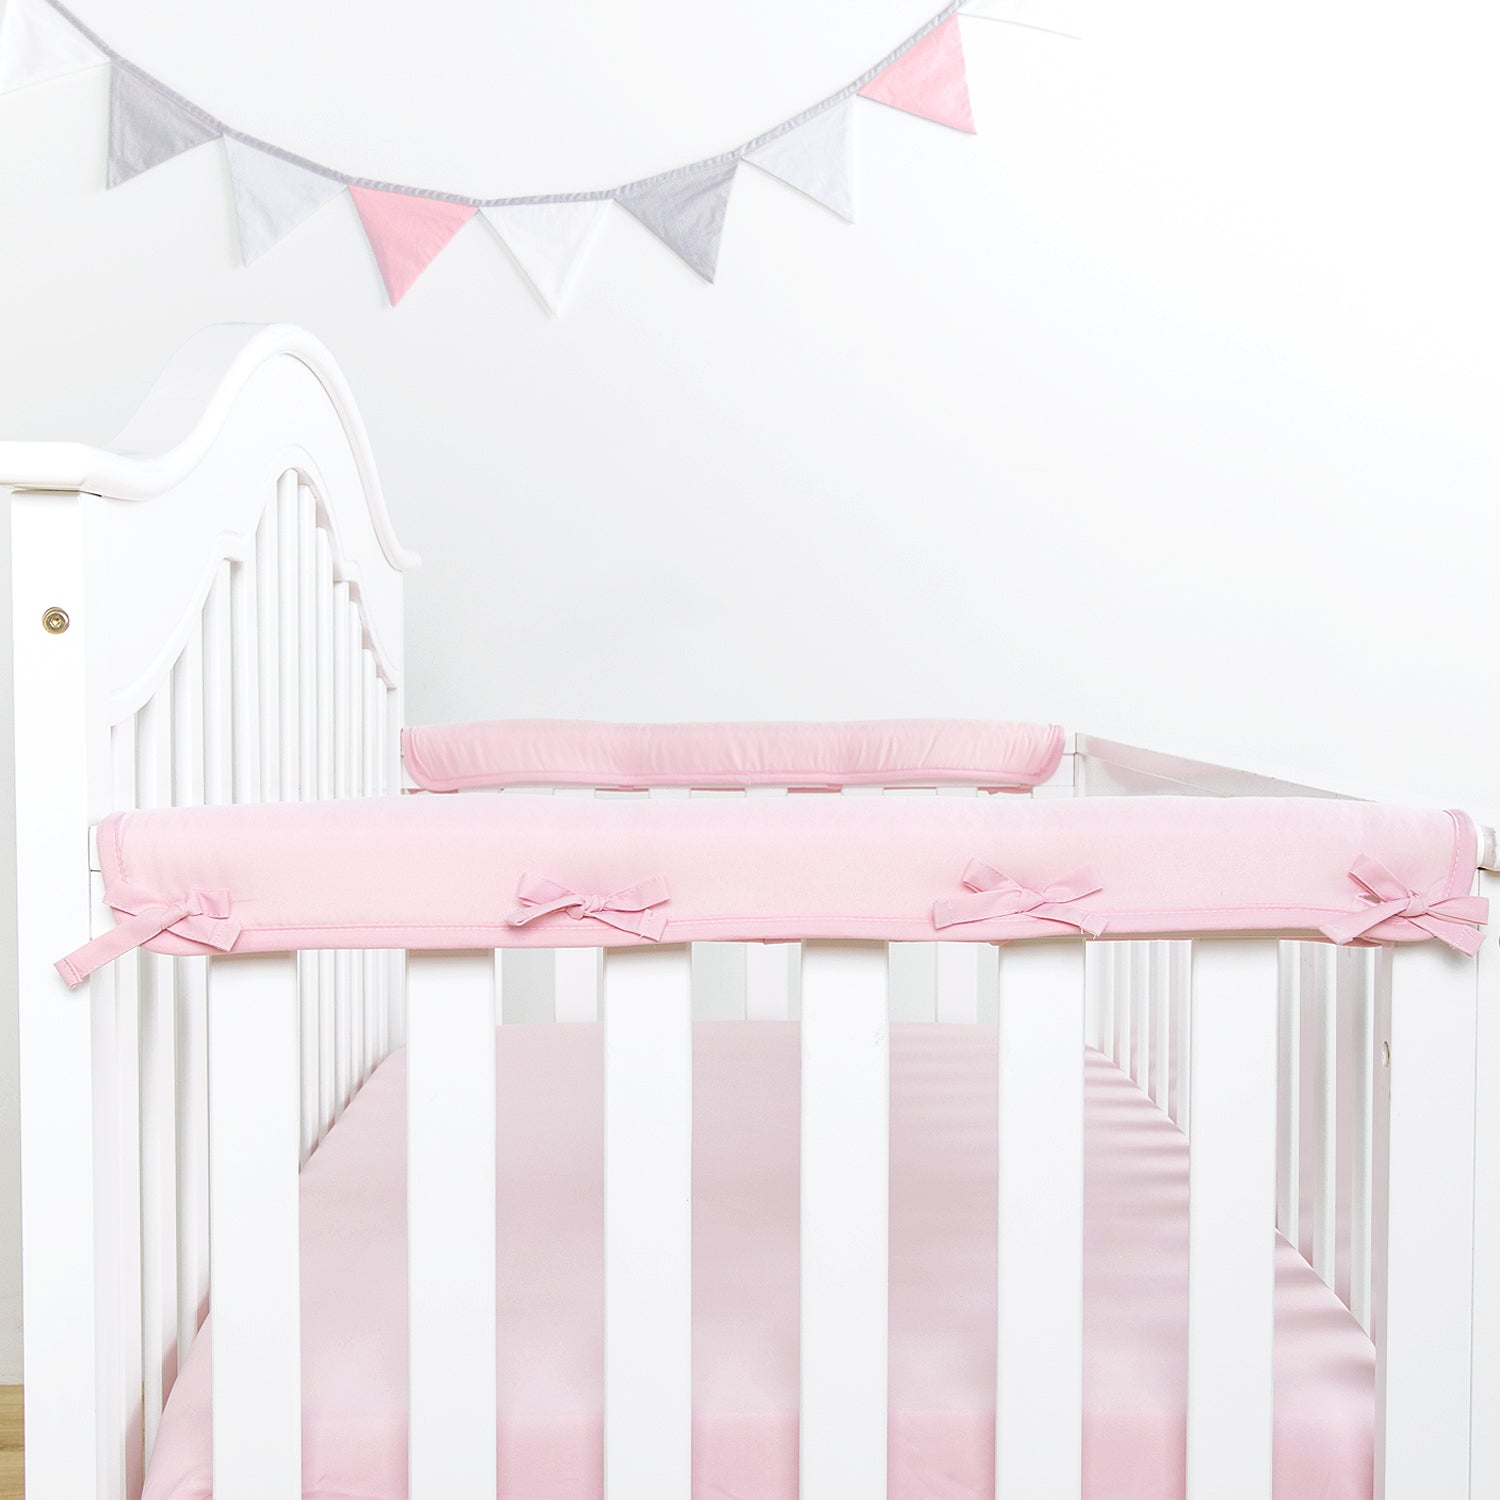 Narrow Side Crib Rail Cover Protector - 5 Colors